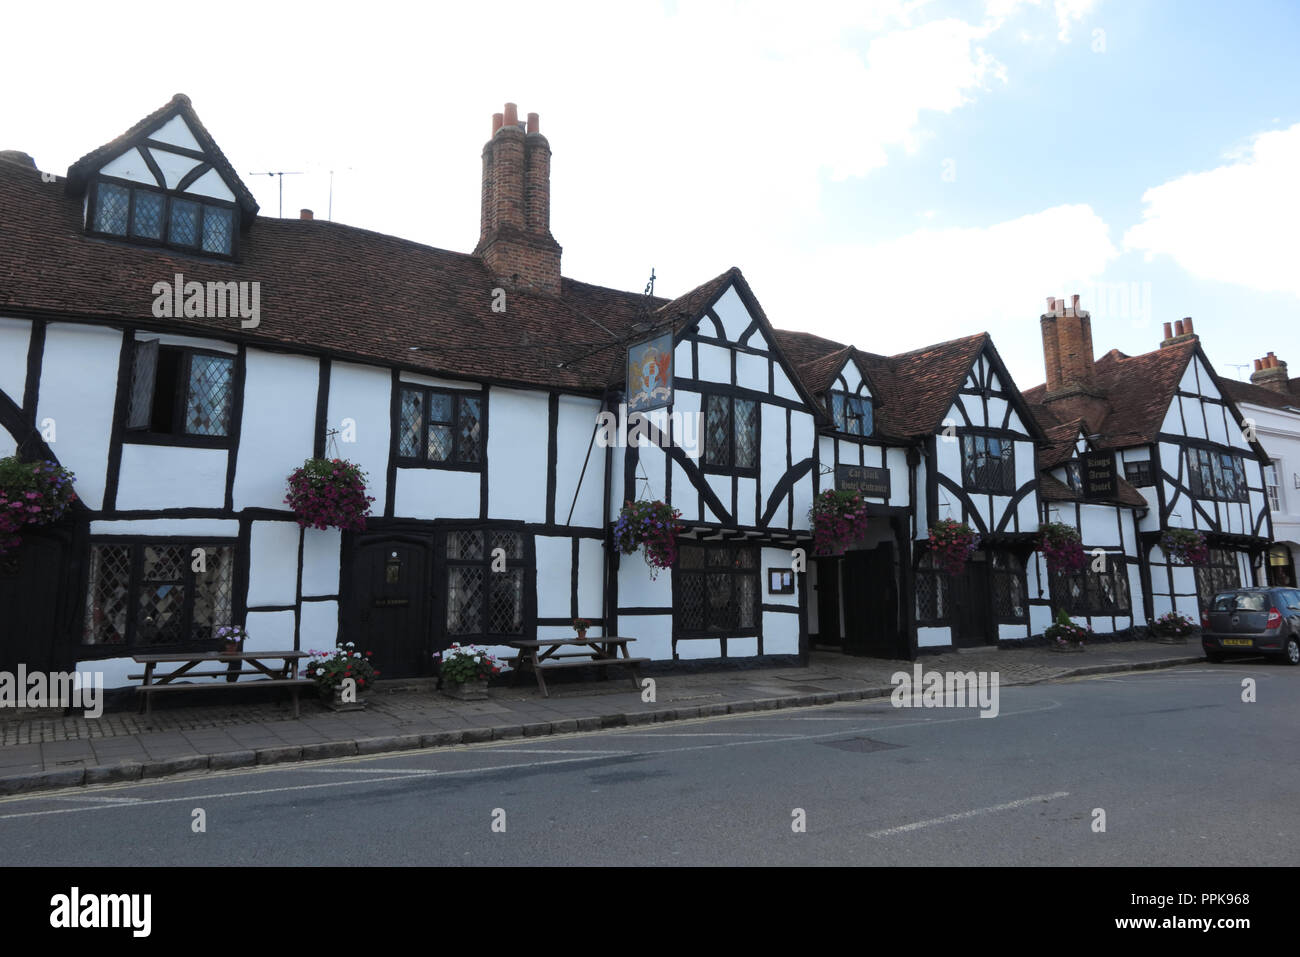 King's Arms Hotel, High Street, Amersham, Buckinghamshire - Stock Image